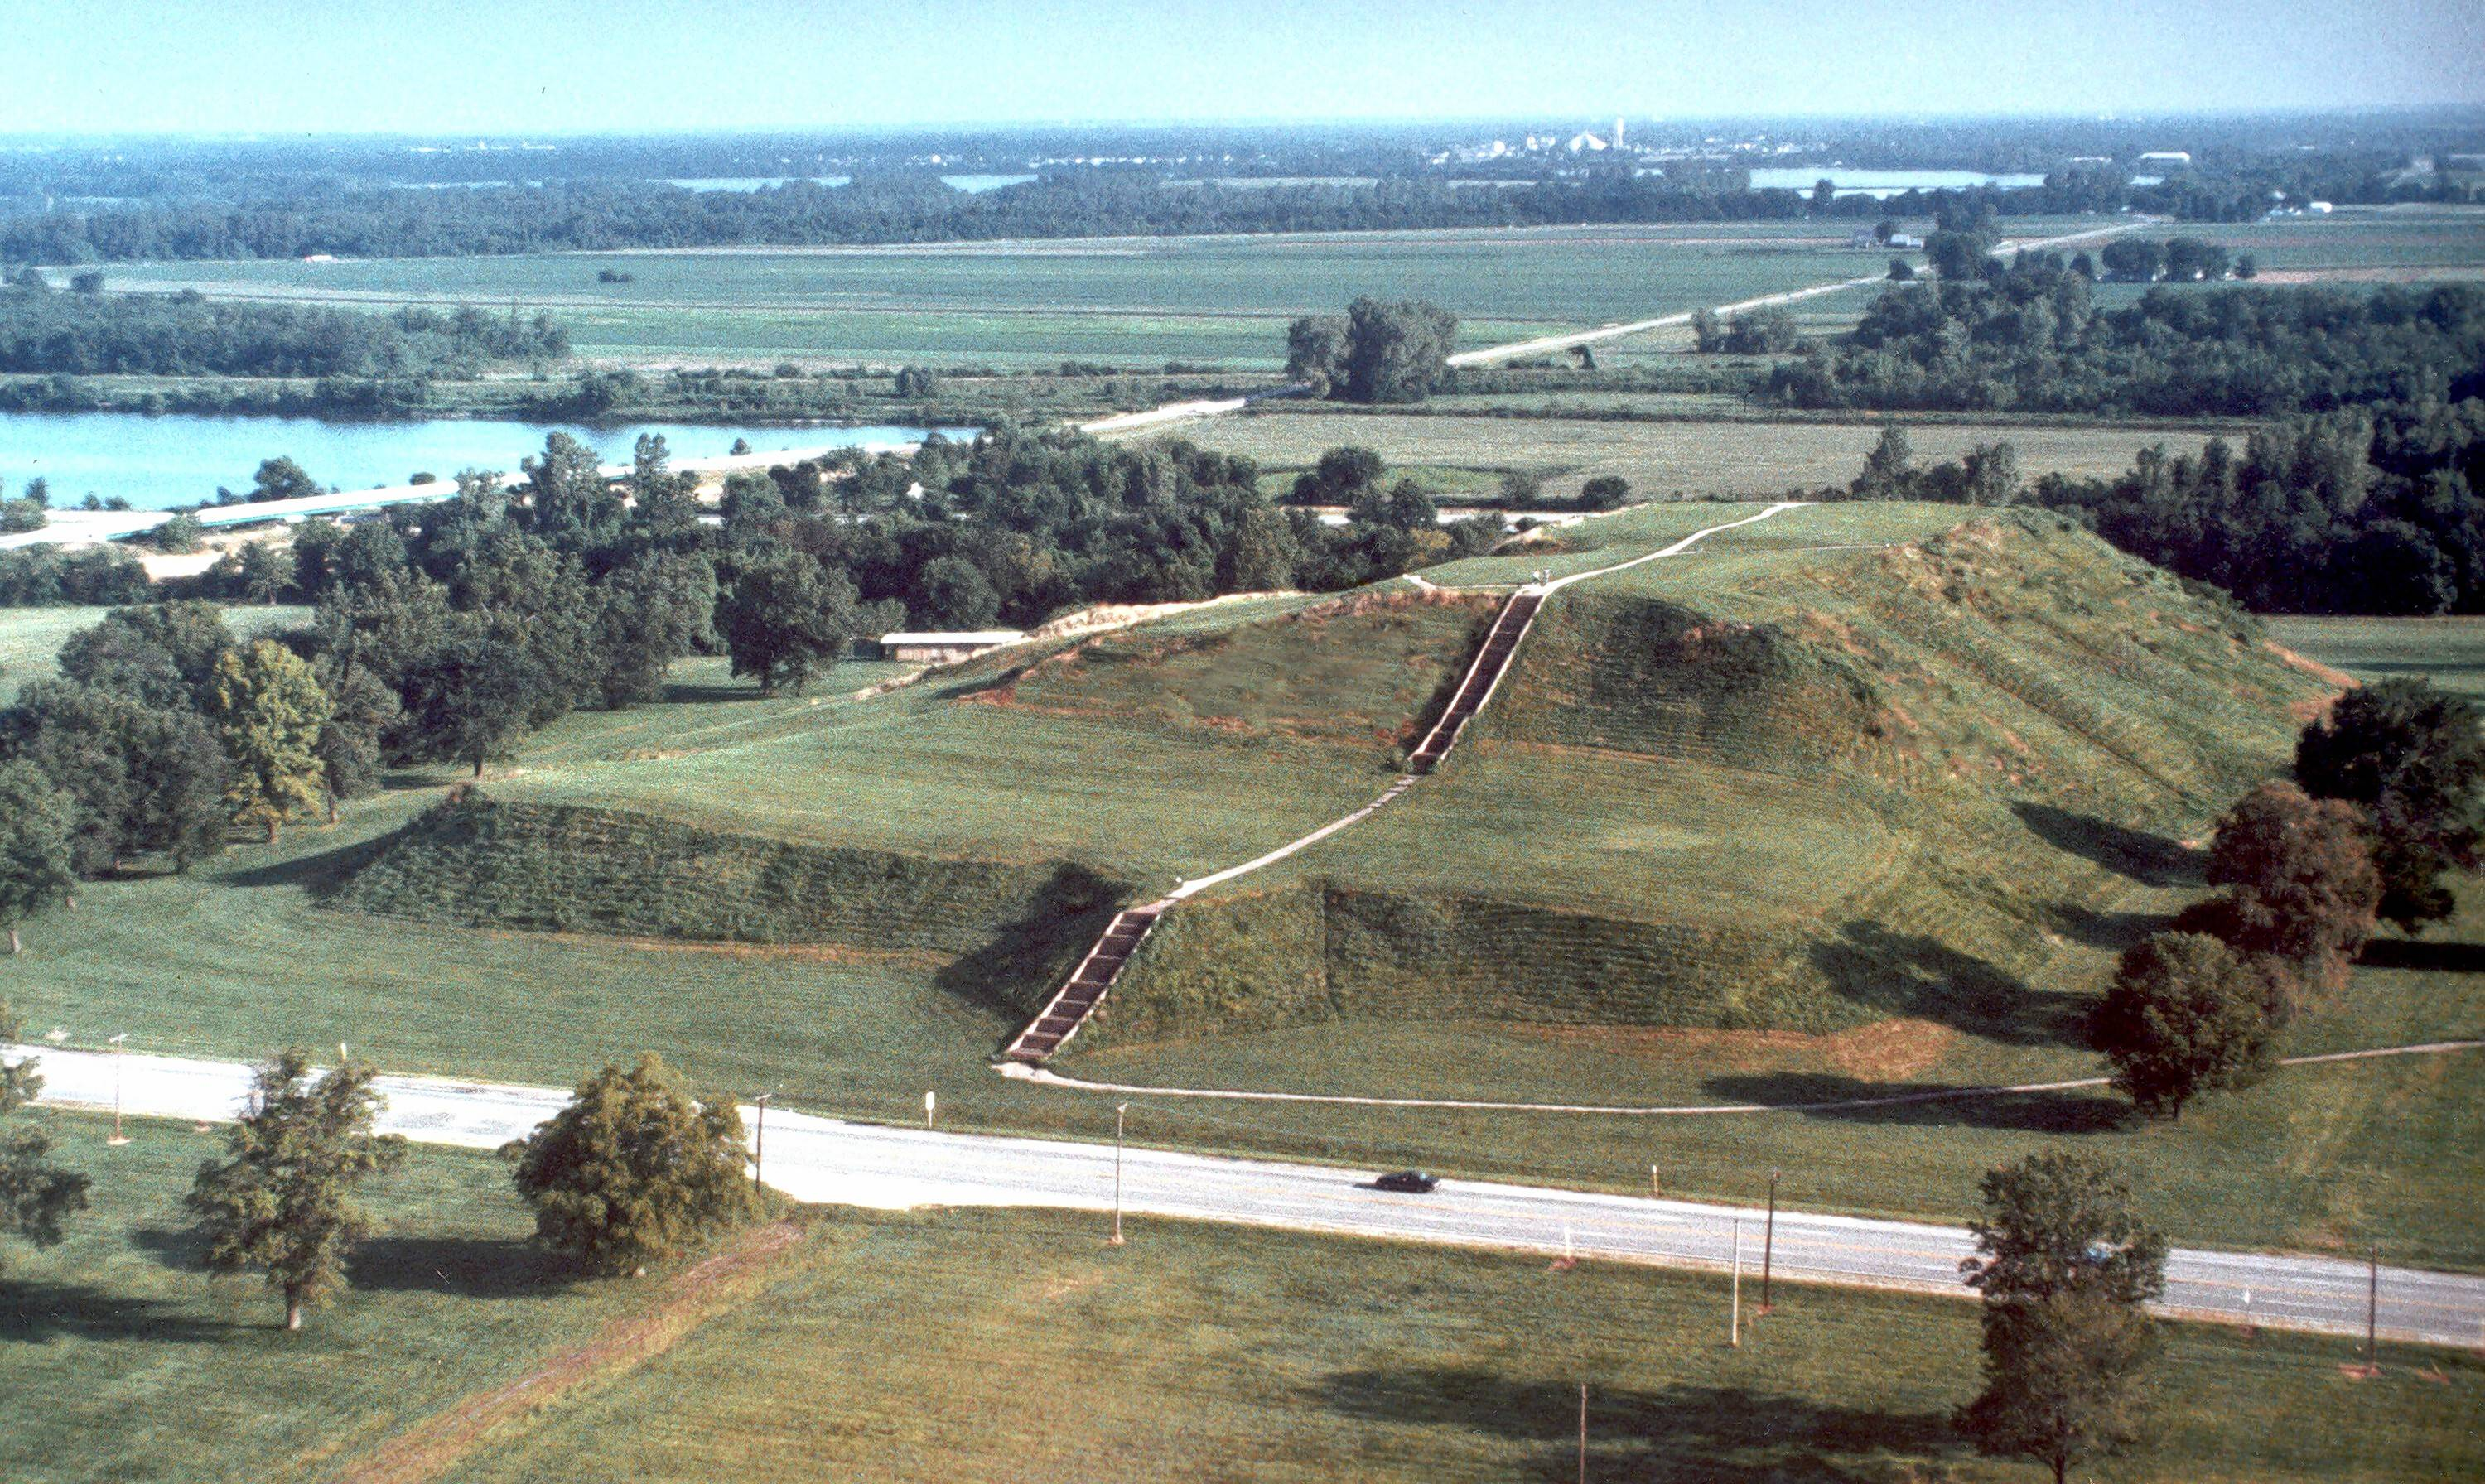 This is an aerial view of the 100-foot-high Monks Mound at Cahokia Mounds State Historic Site.